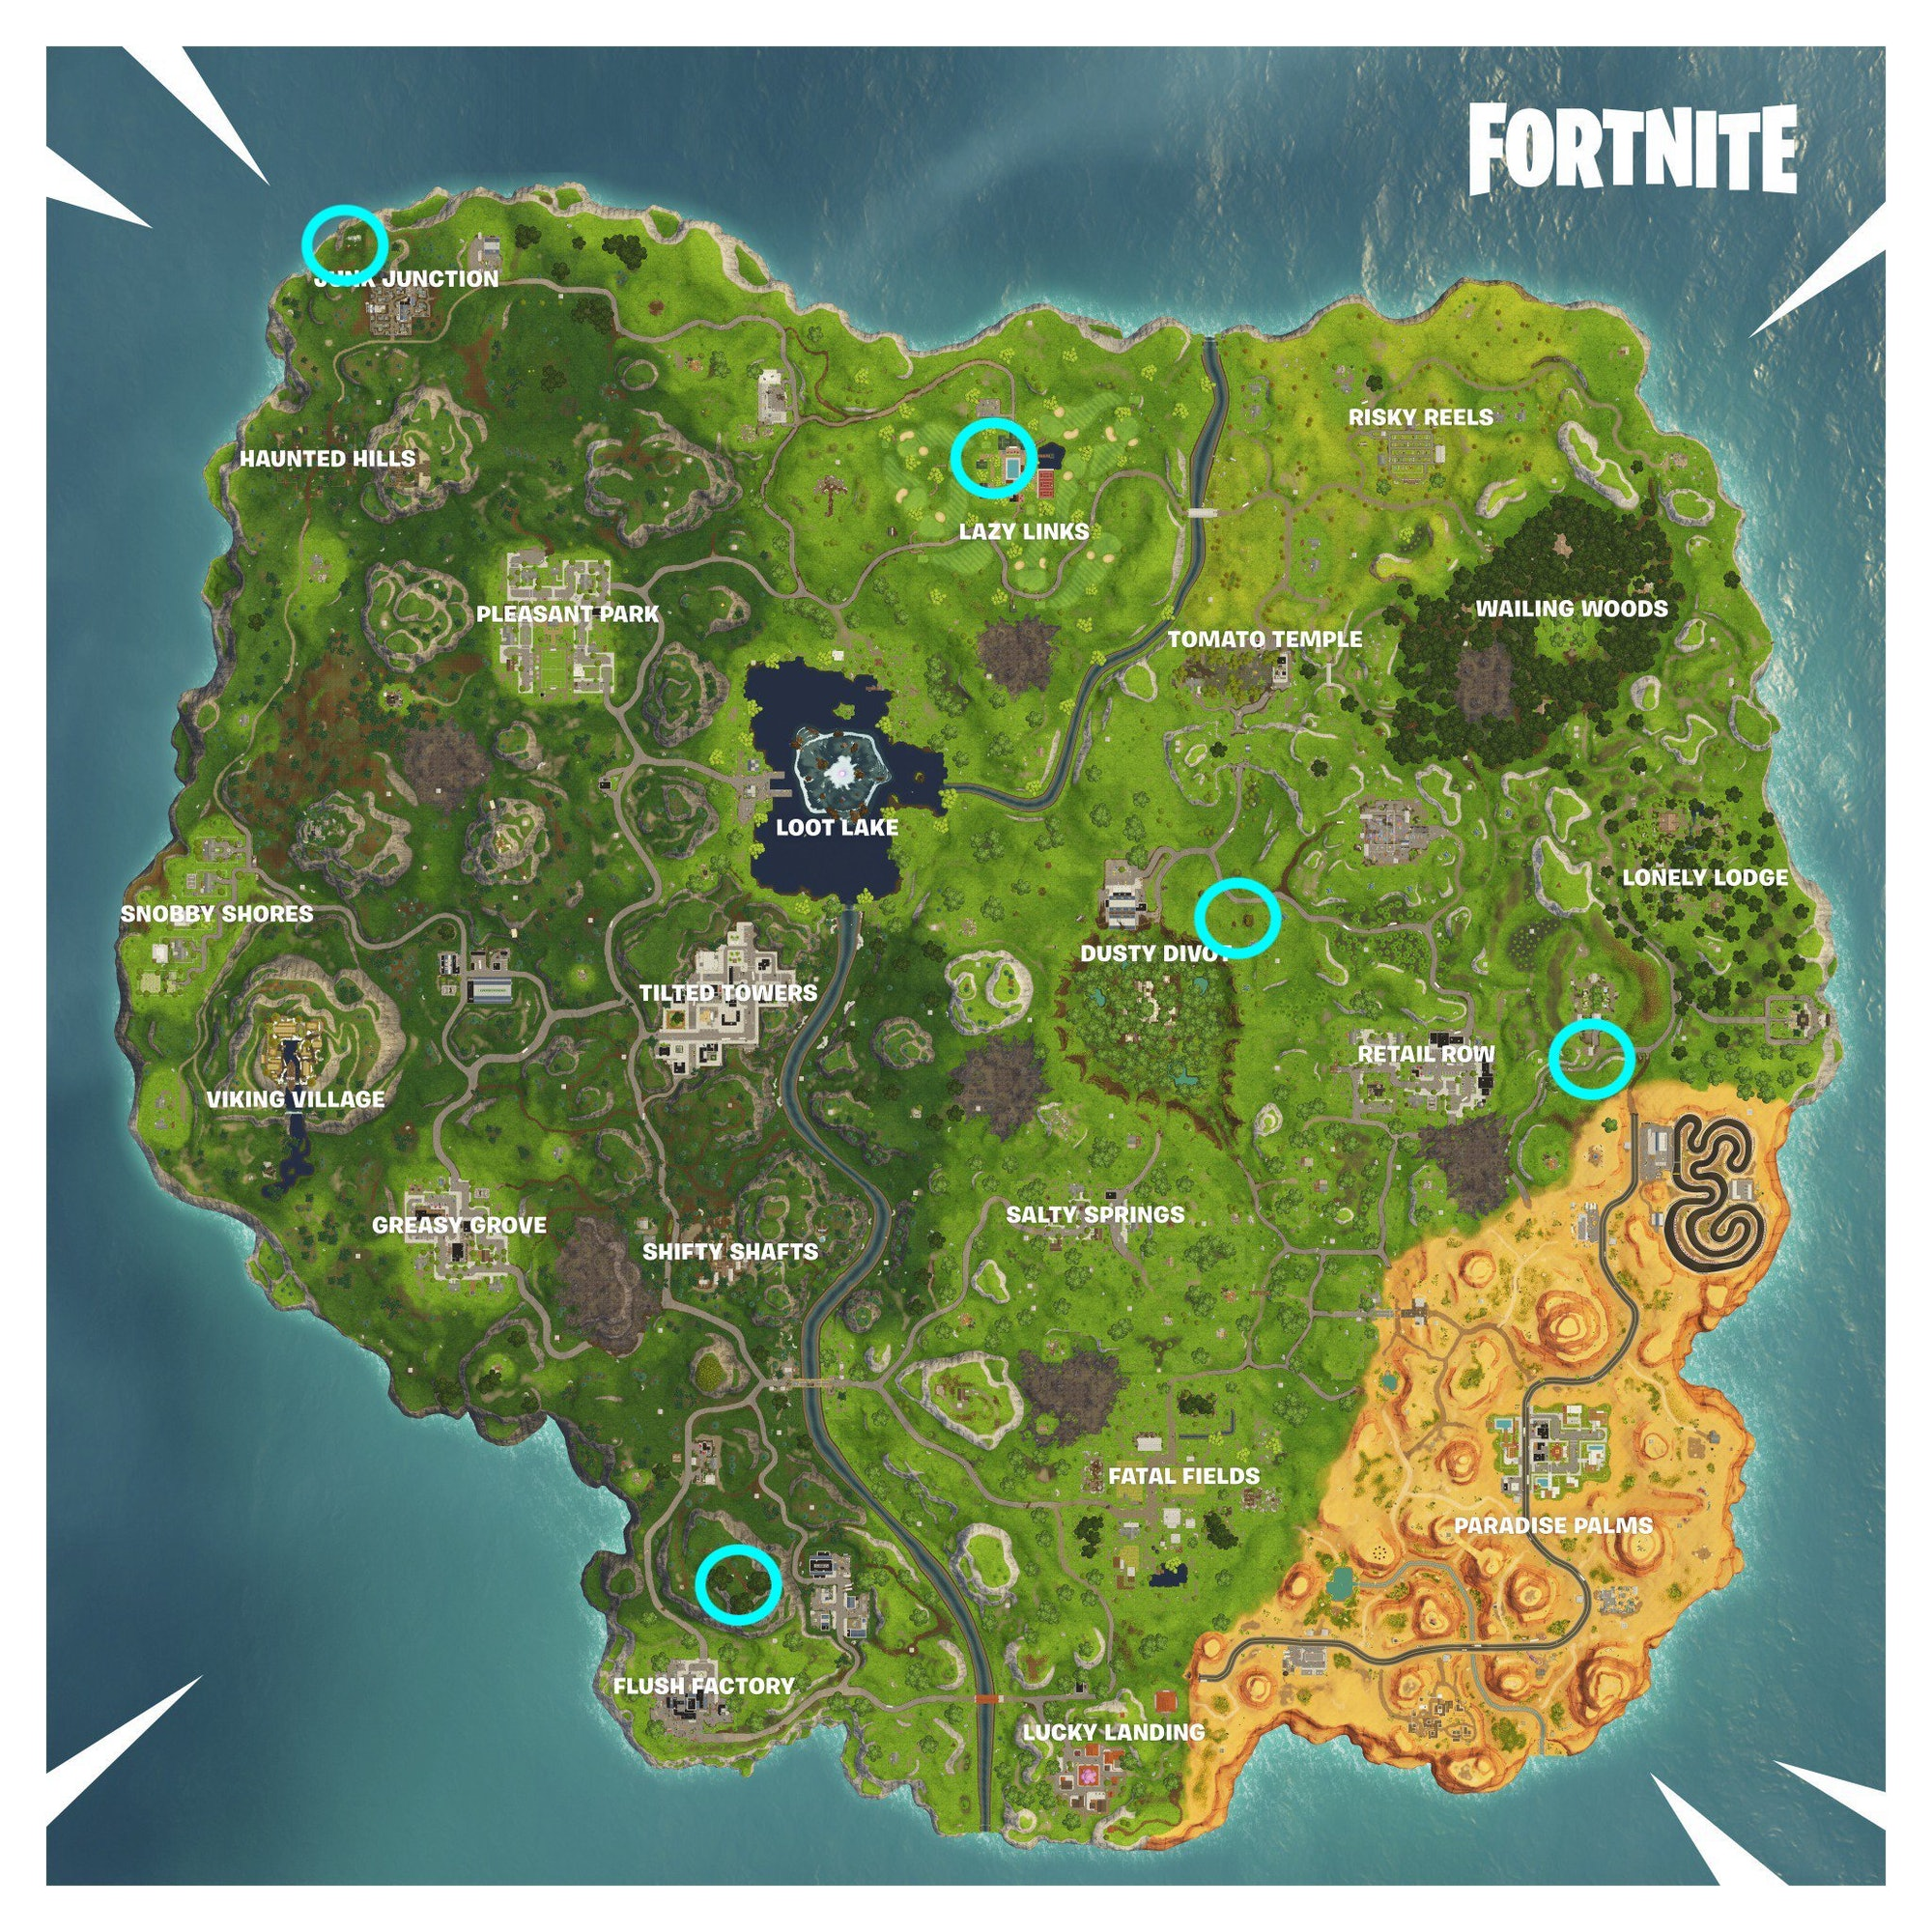 'Fortnite' Vehicle Timed Trials